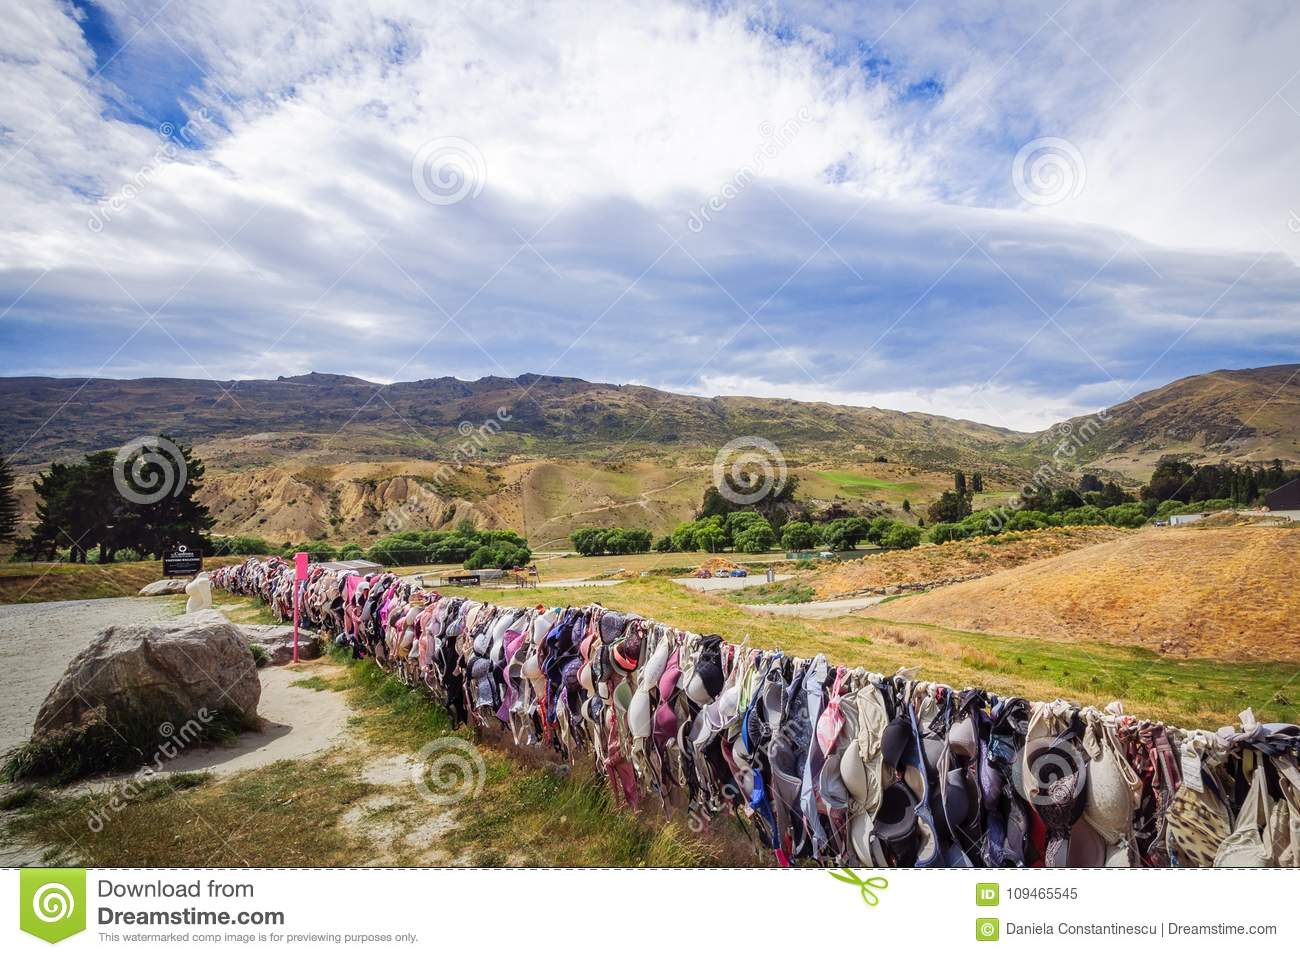 The Wall of Bras in Cardrona Valley, New Zealand